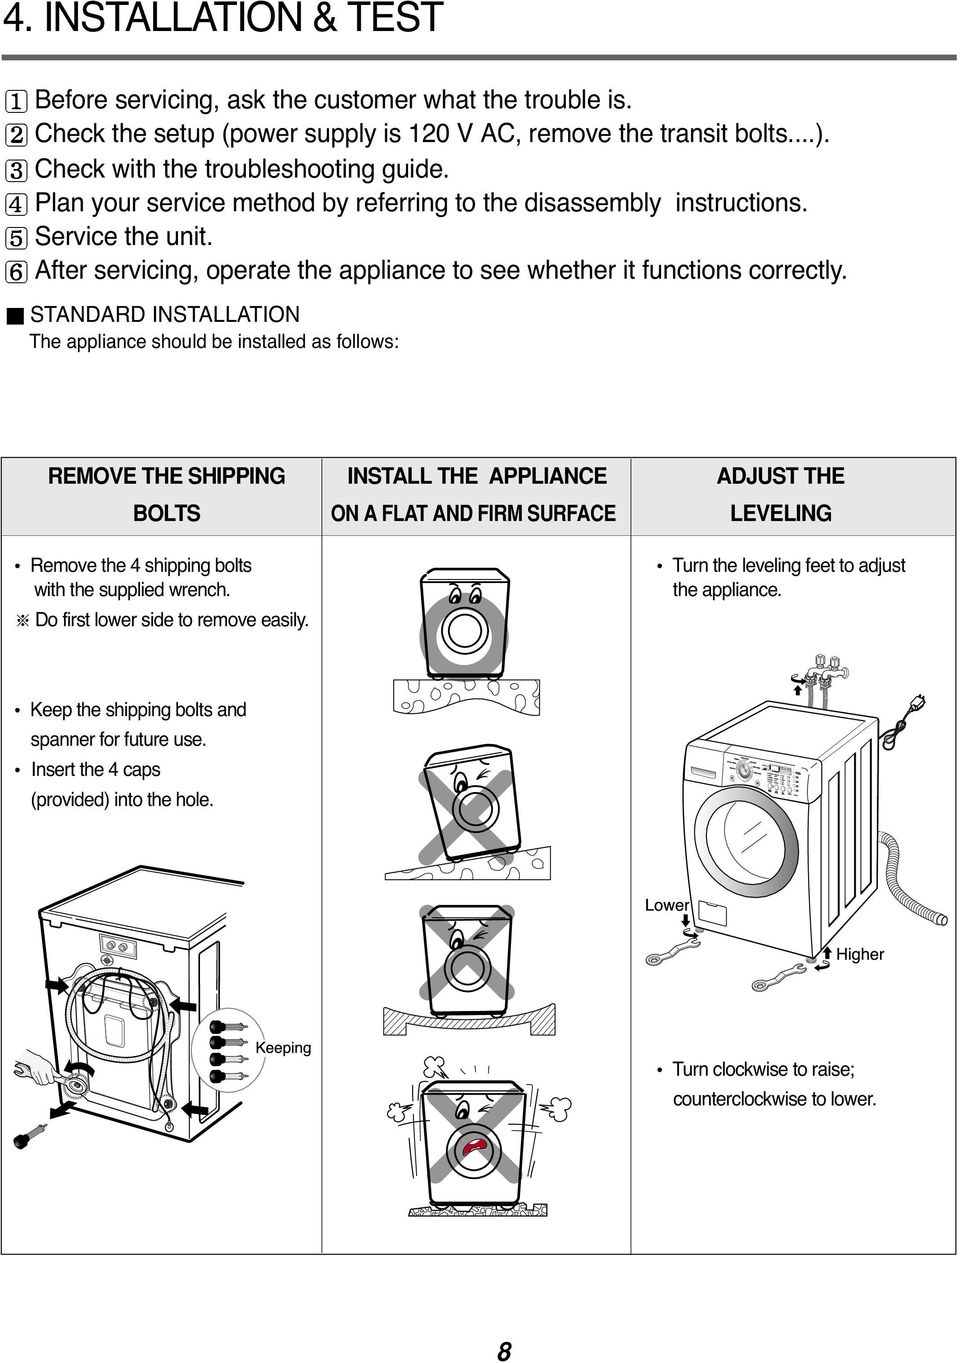 Washing Machine Read This Manual Carefully To Diagnose Problems Wiring Diagram Whirlpool Wtw5200vq2 Standard Installation The Appliance Should Be Installed As Follows Remove Shipping Install